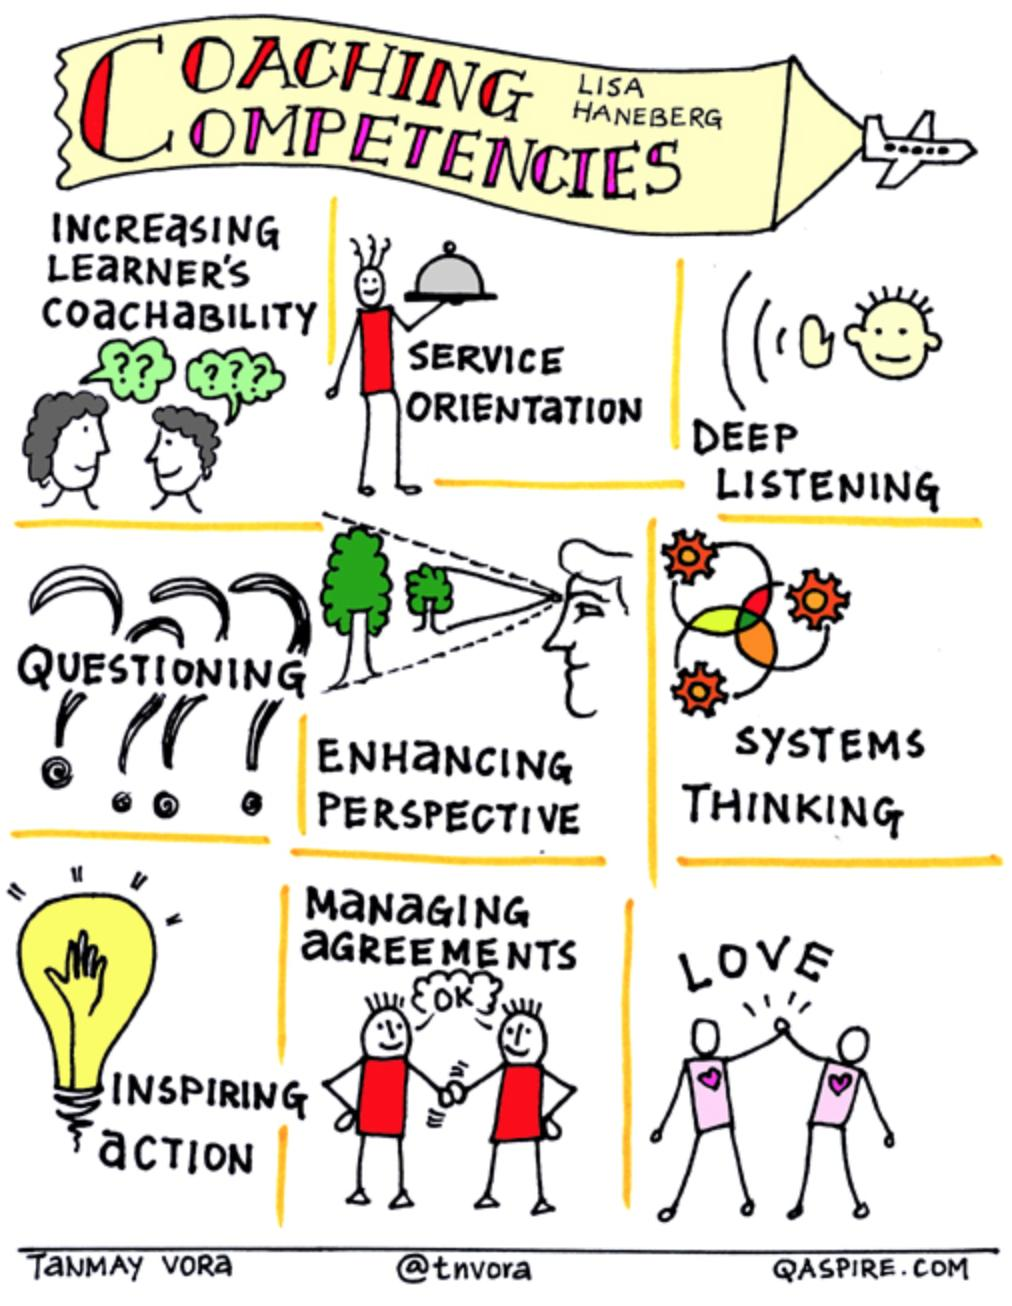 Great #visual for anyone who works to bring out the best in other people! #sketchnote by @tnvora based on @LisaHaneberg work #edchat #coaching #cpchat https://t.co/euFuKD2hBA